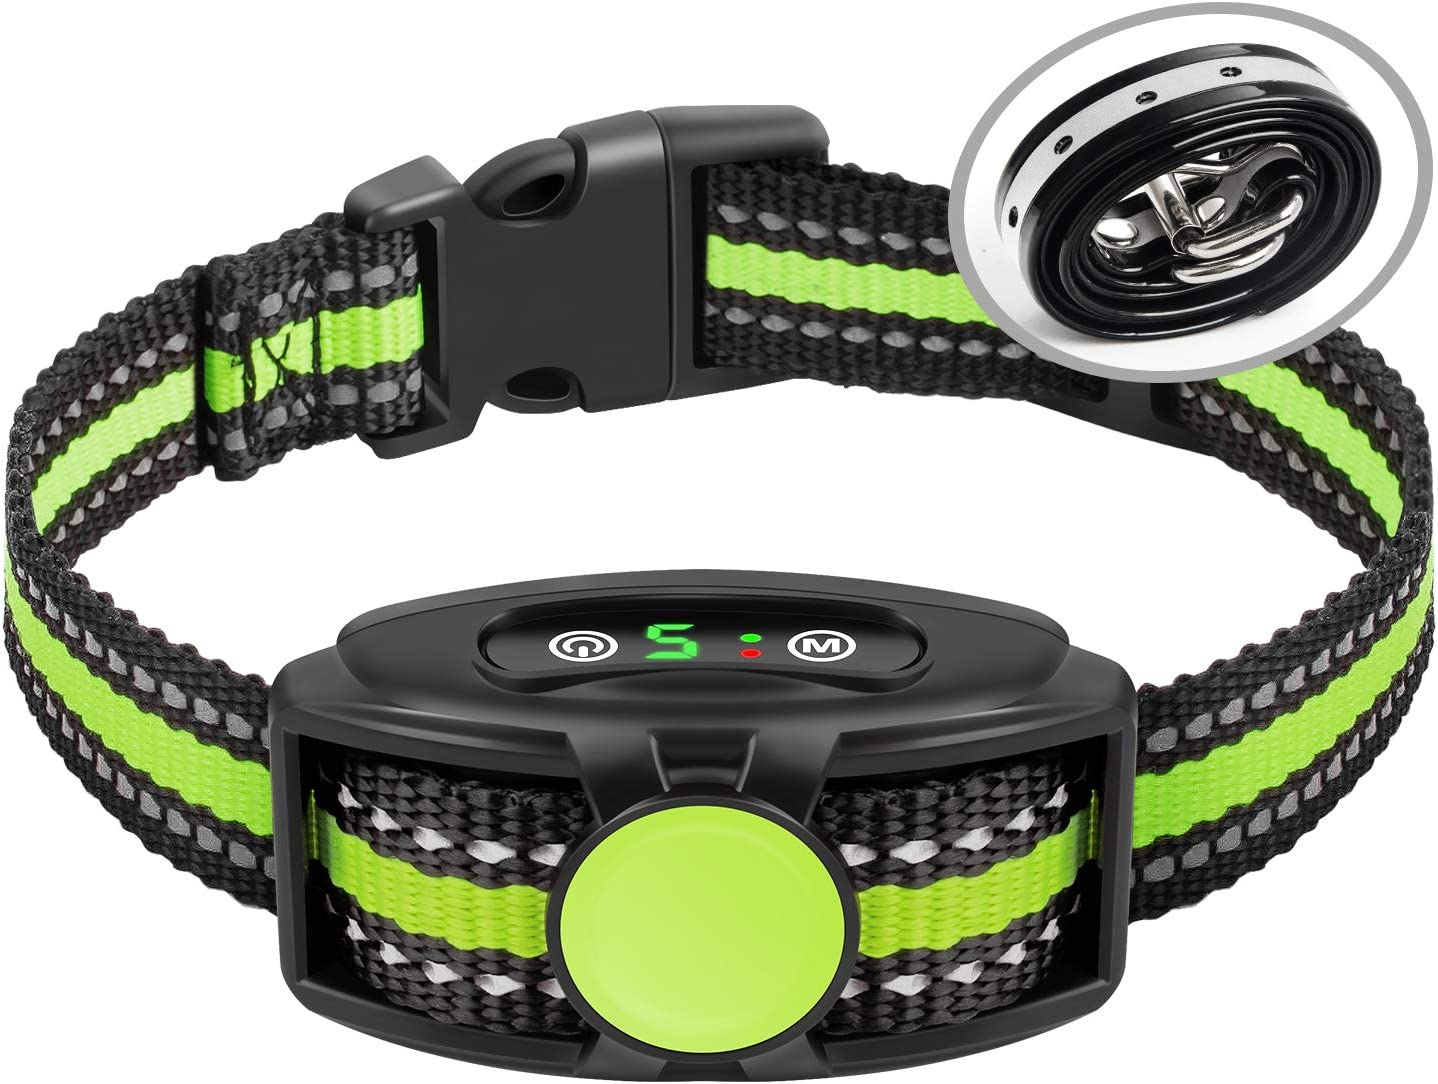 Bark Collar No Shock Bark Collar Rechargeable Bark Collar Shockless with Adjustable Sensitivity and Intensity Beep No Pain Vibration Barking Control Device Bark Collar for Small Medium Large Dogs : Kitchen & Dining